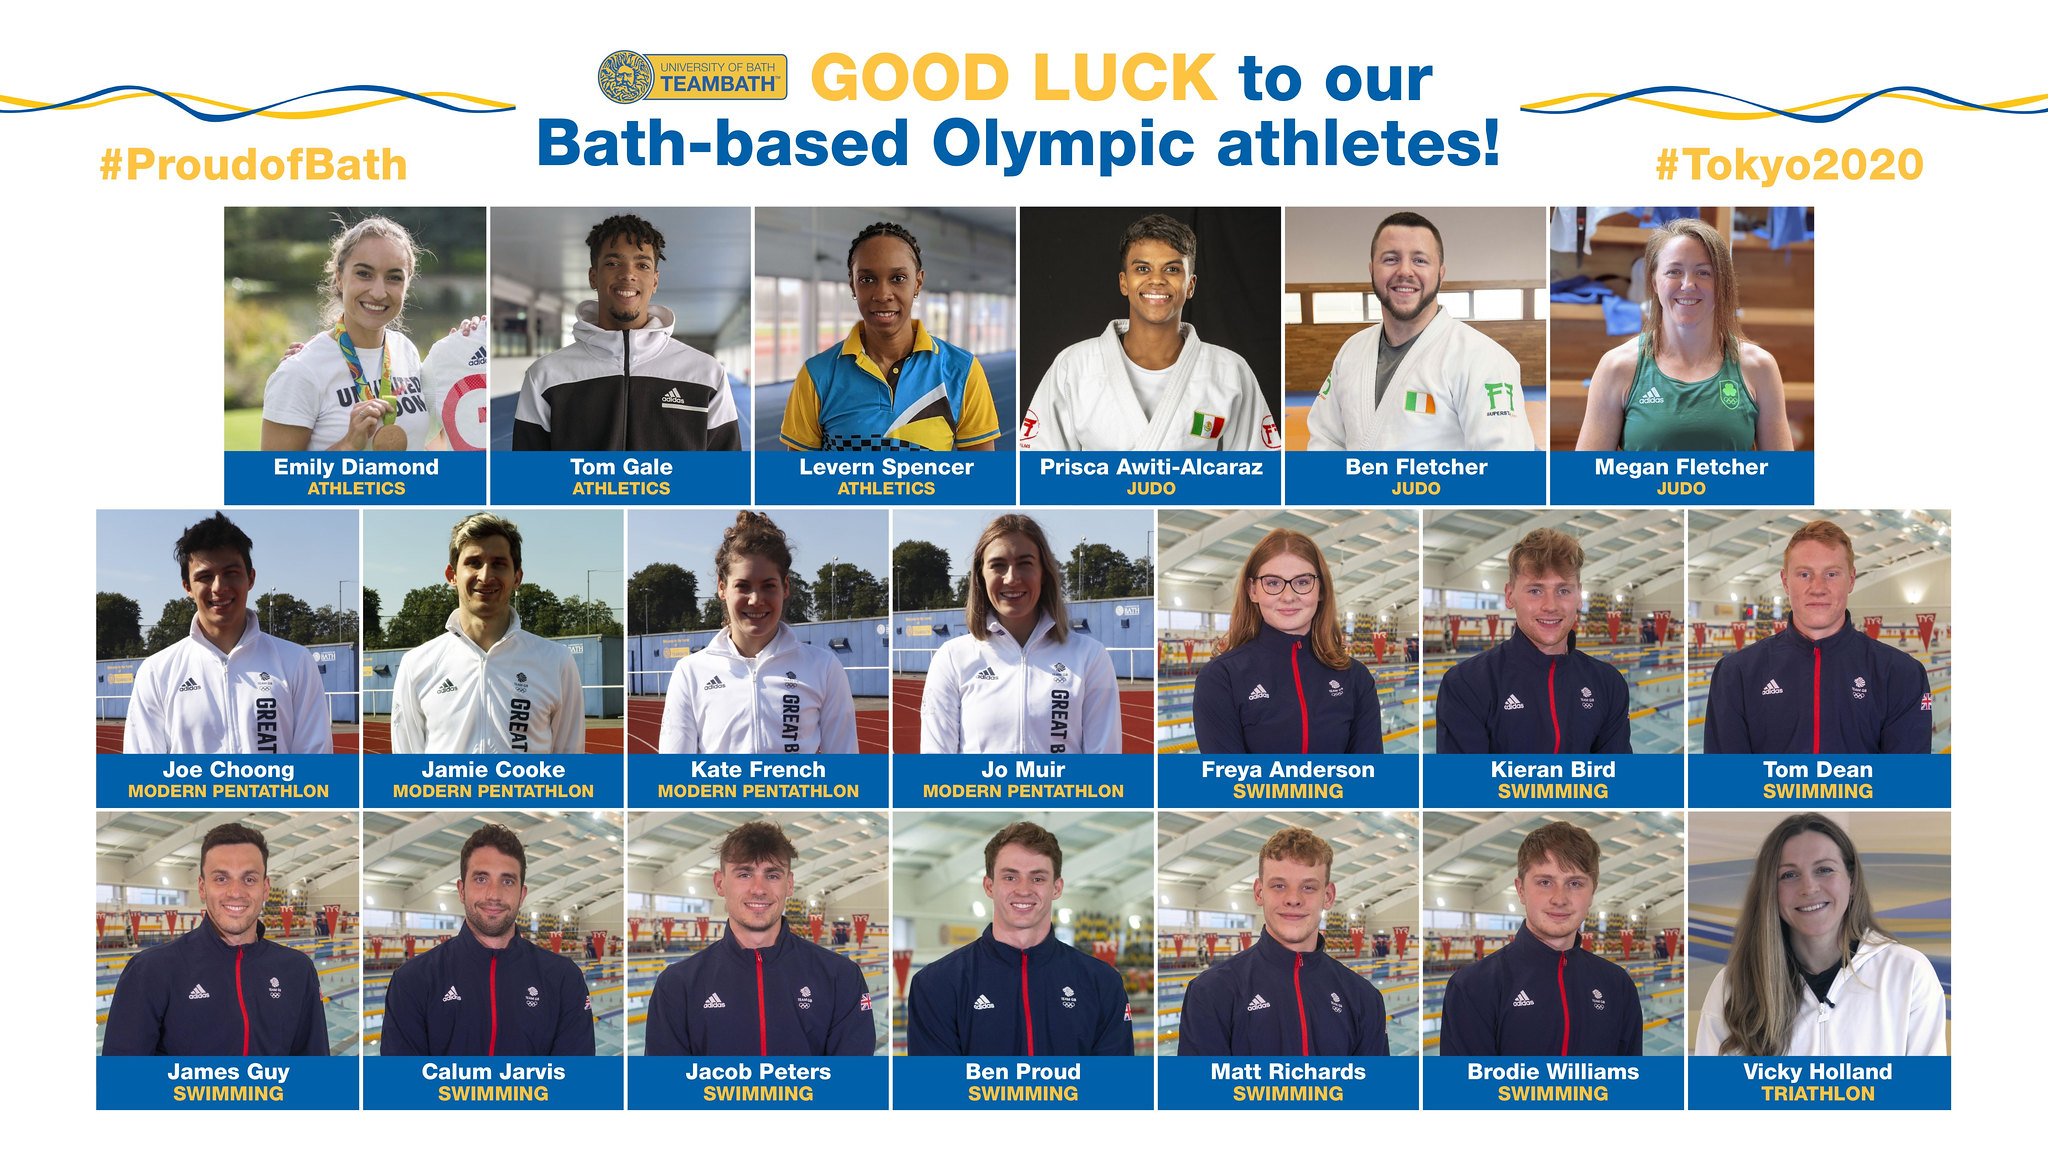 A montage of the 20 University of Bath-based athletes competing at the Tokyo 2020 Olympic Games